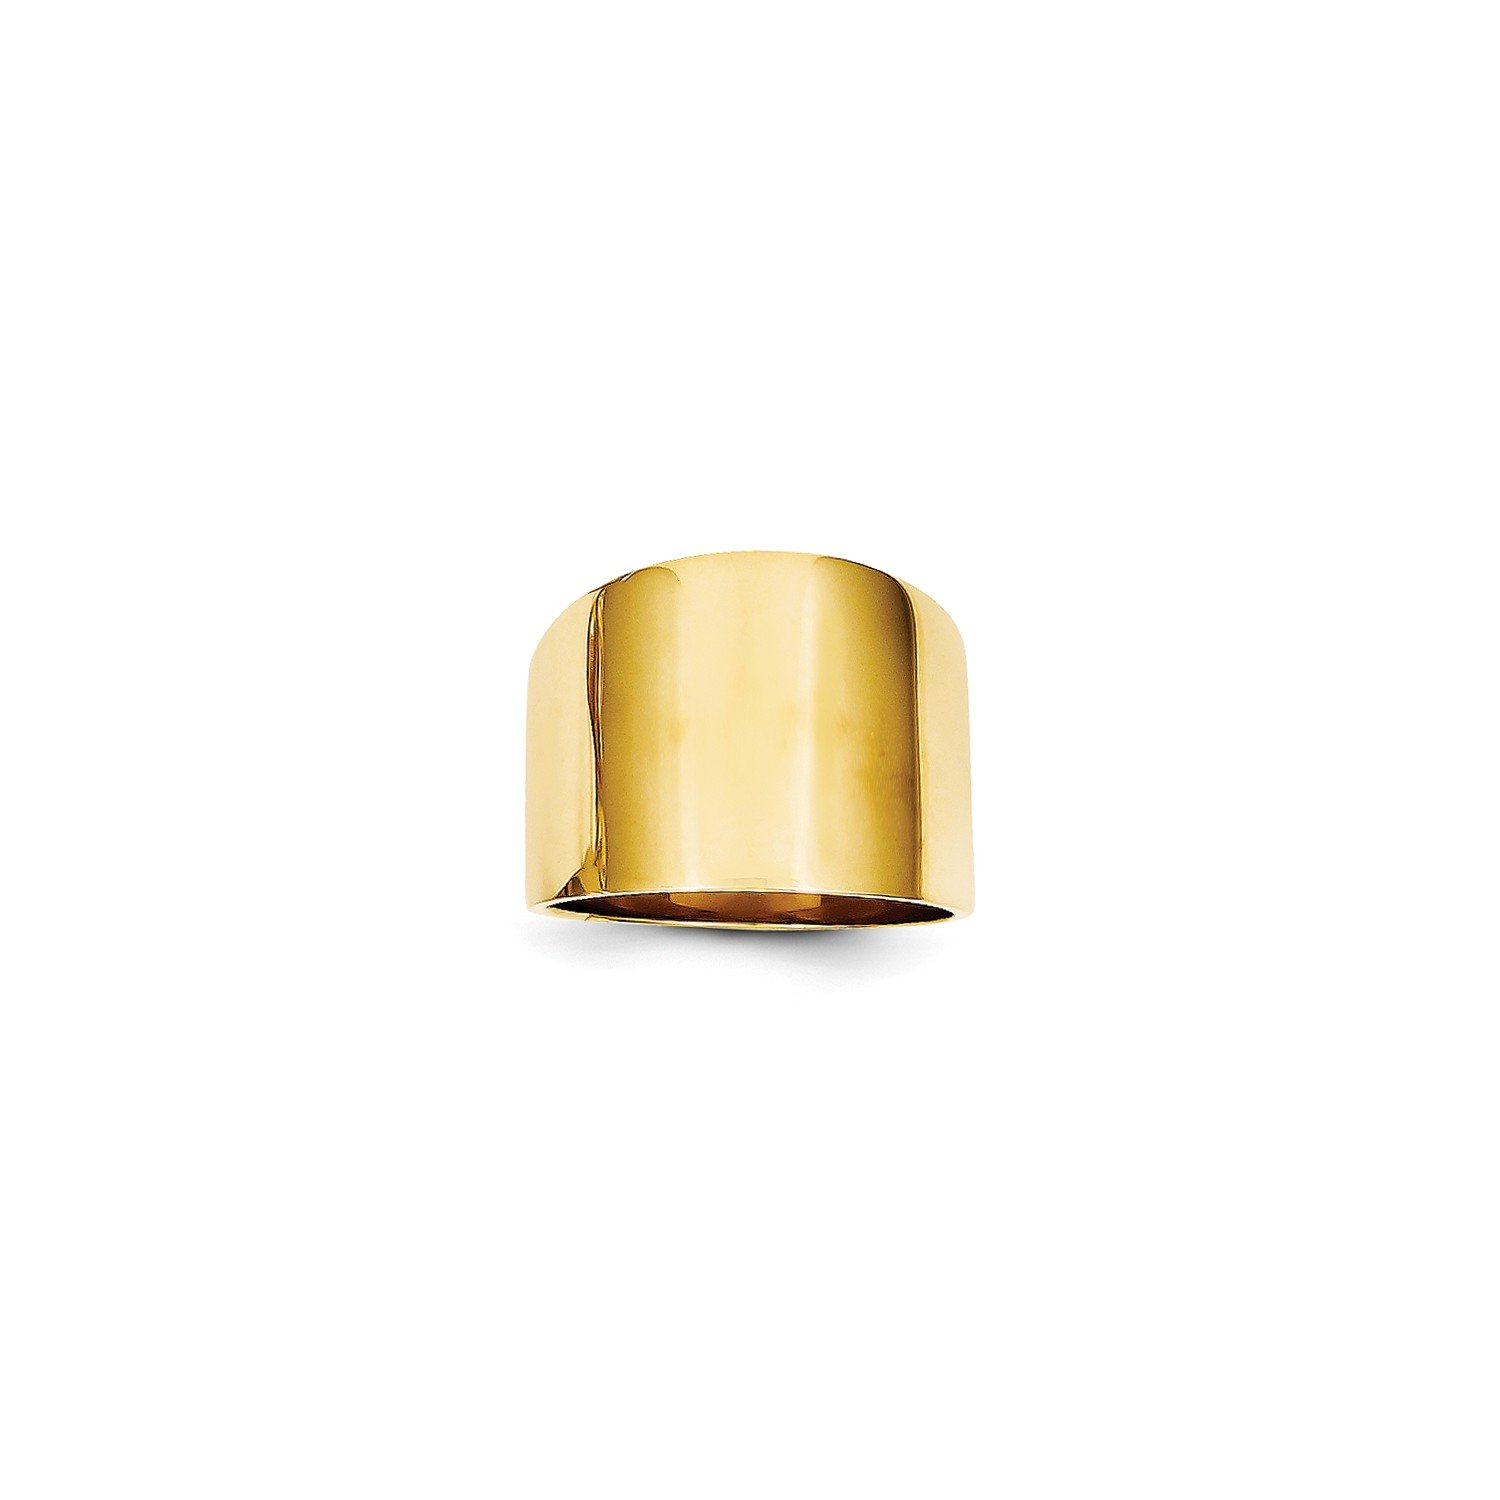 Roy Rose Jewelry 14K Yellow Gold 15mm Flat-top Tapered Cigar Band Ring ~ Size 7